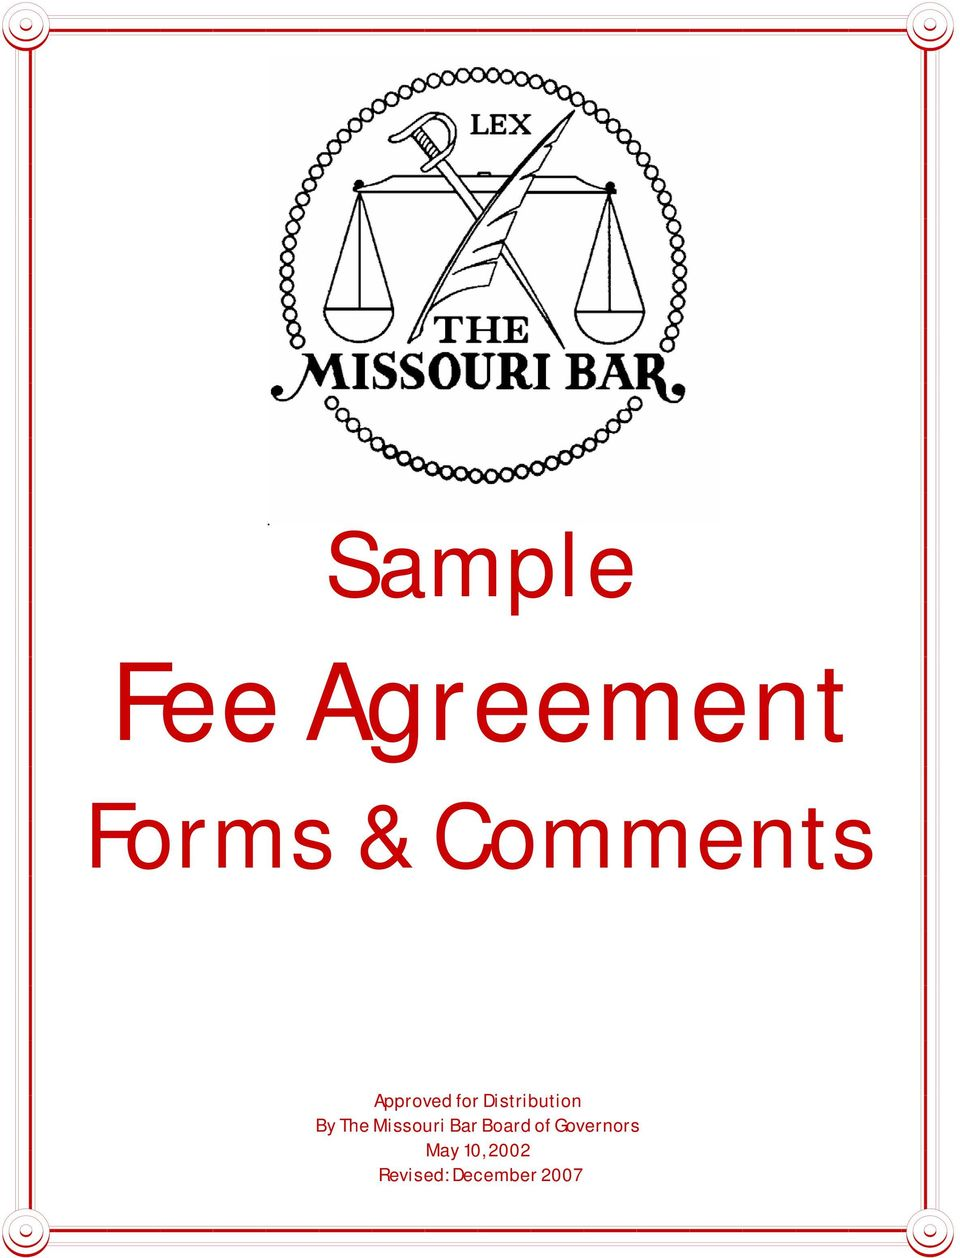 By The Missouri Bar Board of